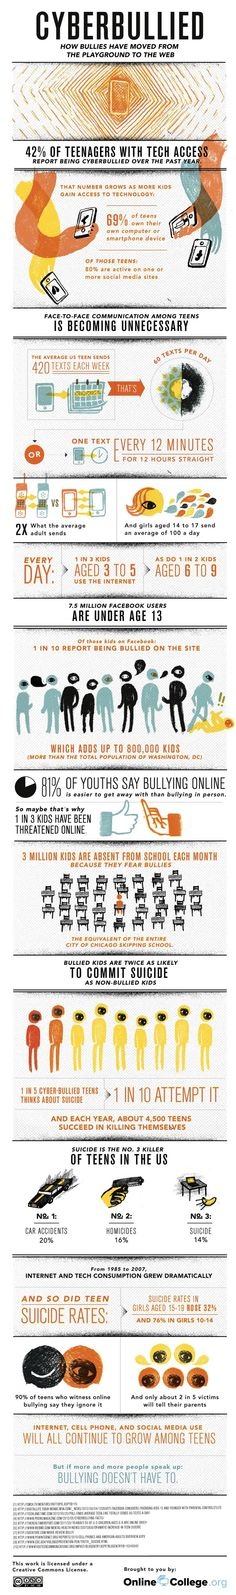 These facts show that bullying can happen everywhere and anywhere and some of the effects of bullying and how big of a problem bullying really is right now.